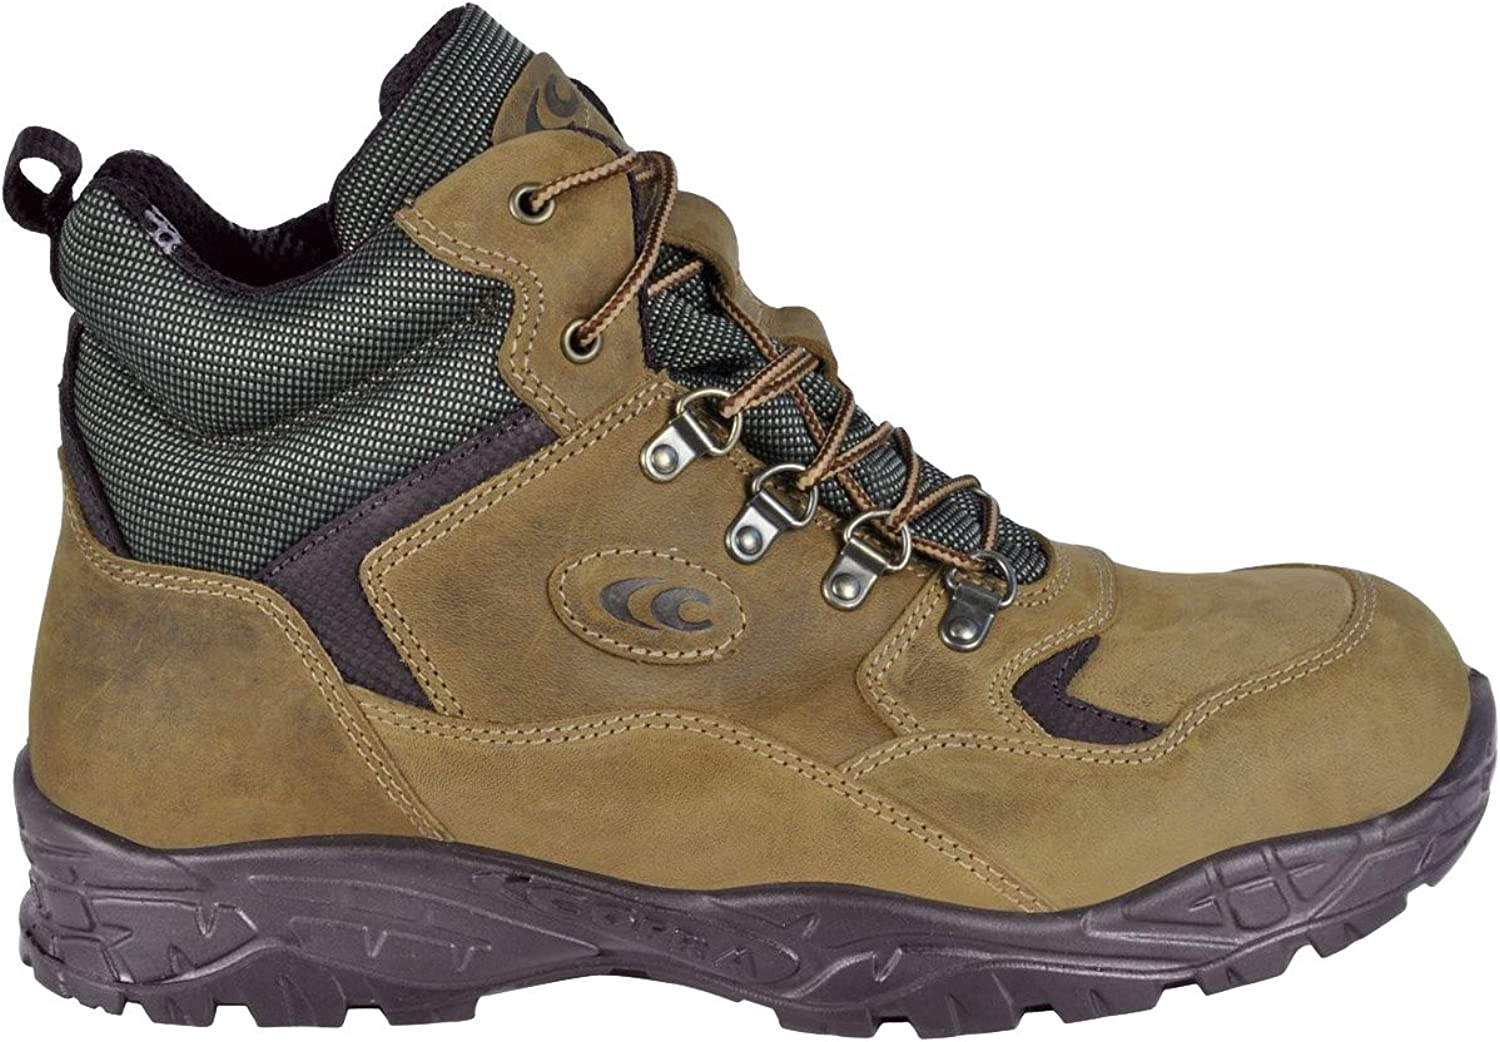 Cofra 22270-000.W42 Safety shoes Horn S3 SRC Size 42 in Beige